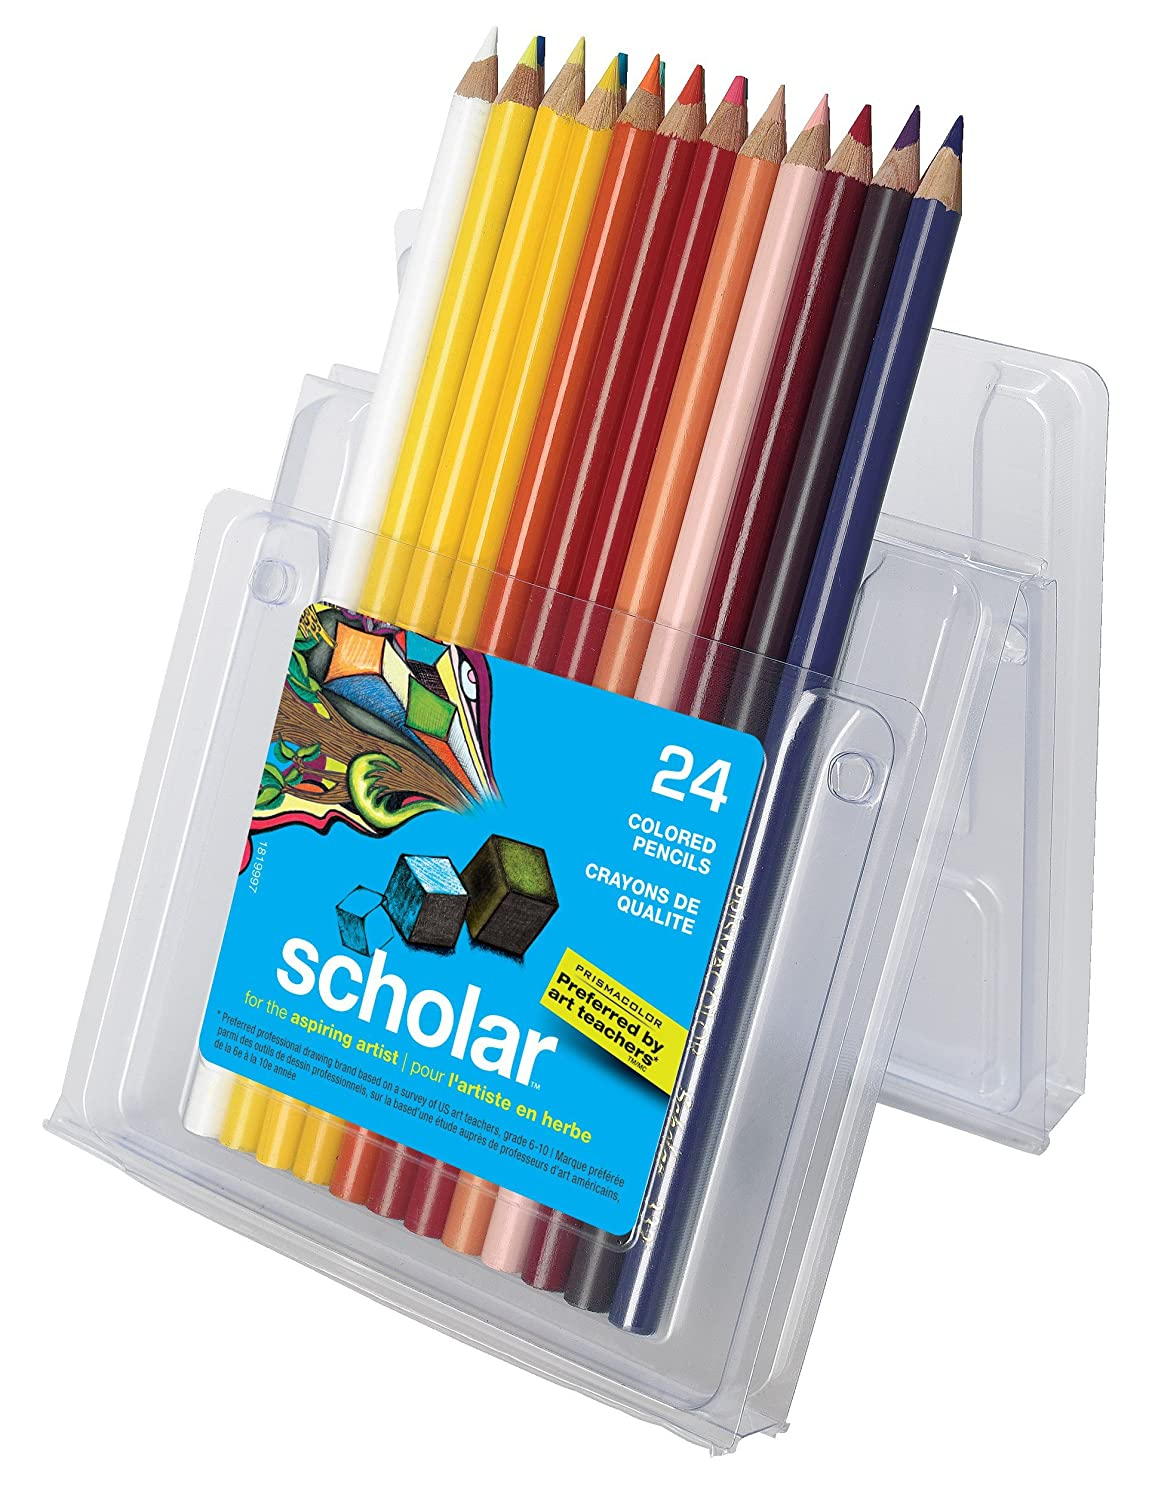 Prismacolor Sanford Scholar Colored Pencils, 24-Count